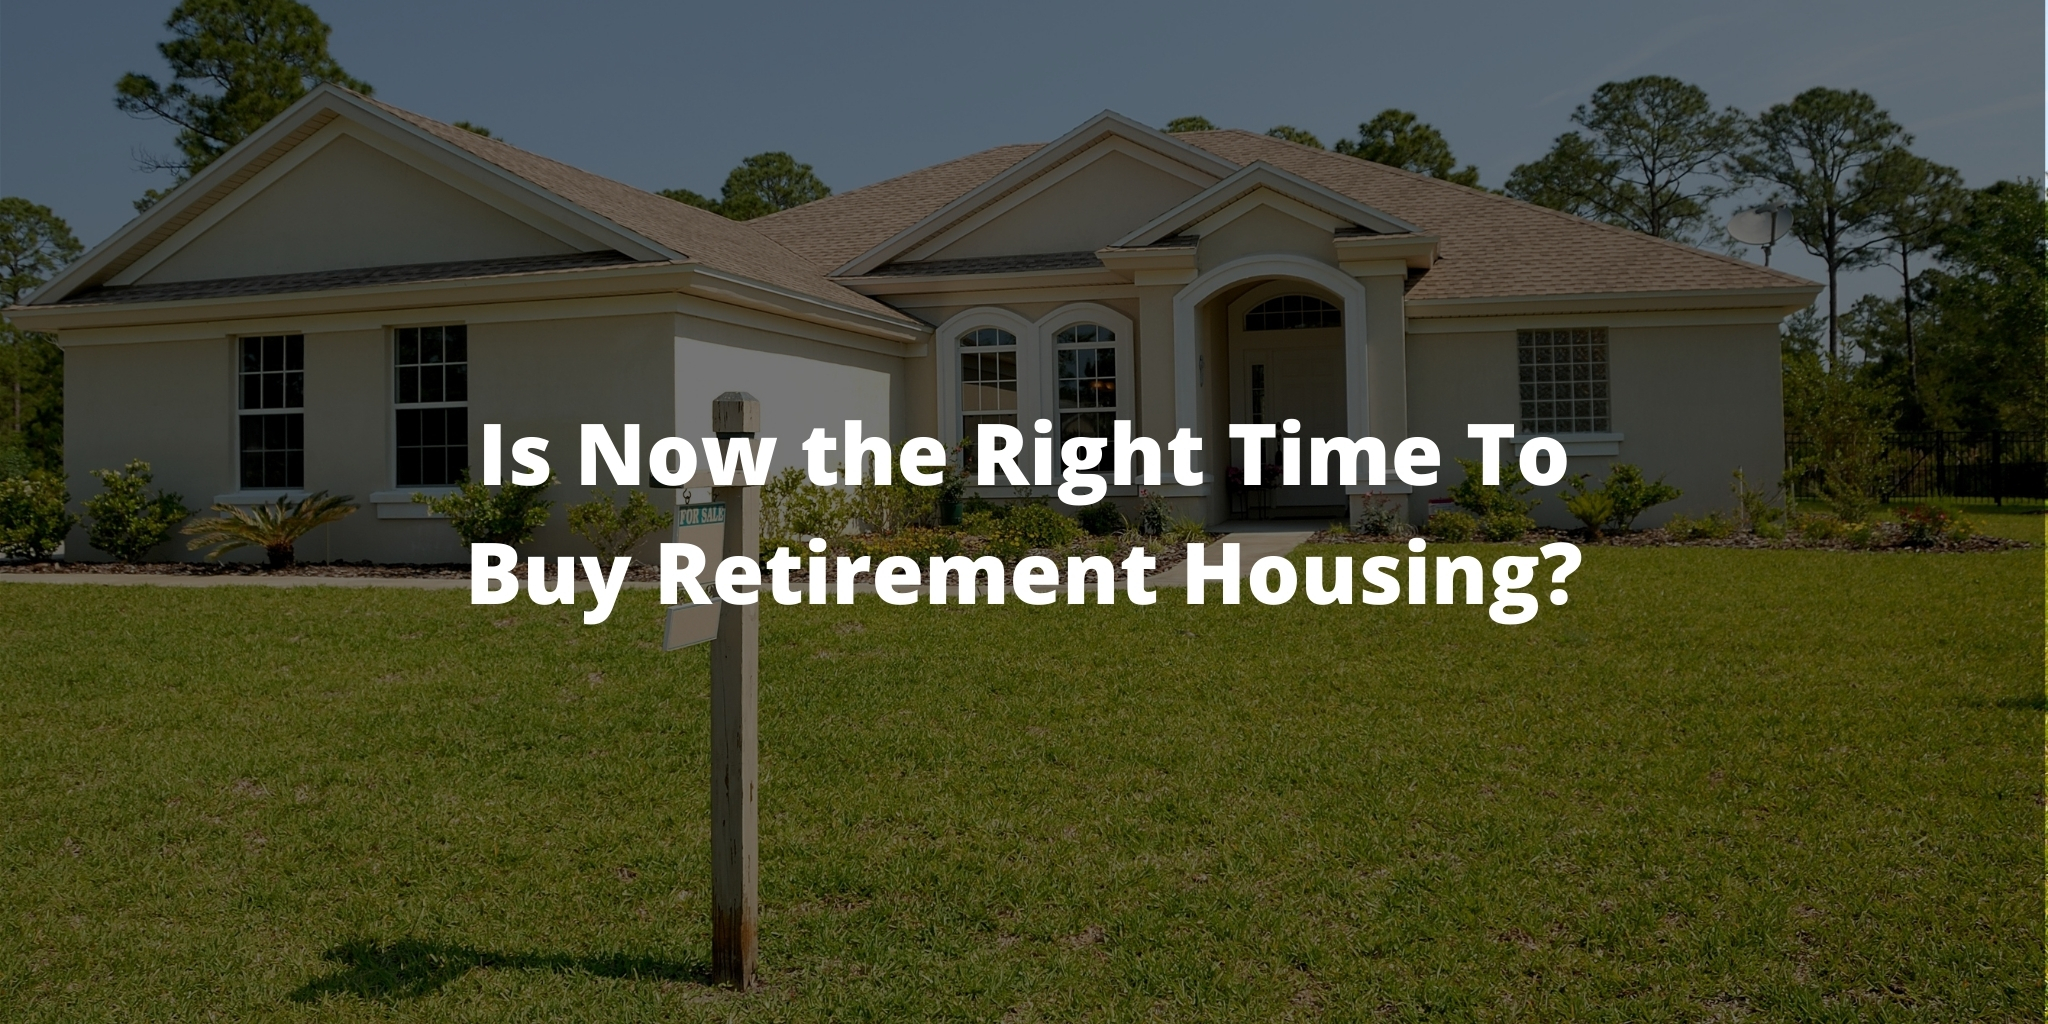 Is Now the Right Time To Buy Retirement Housing?